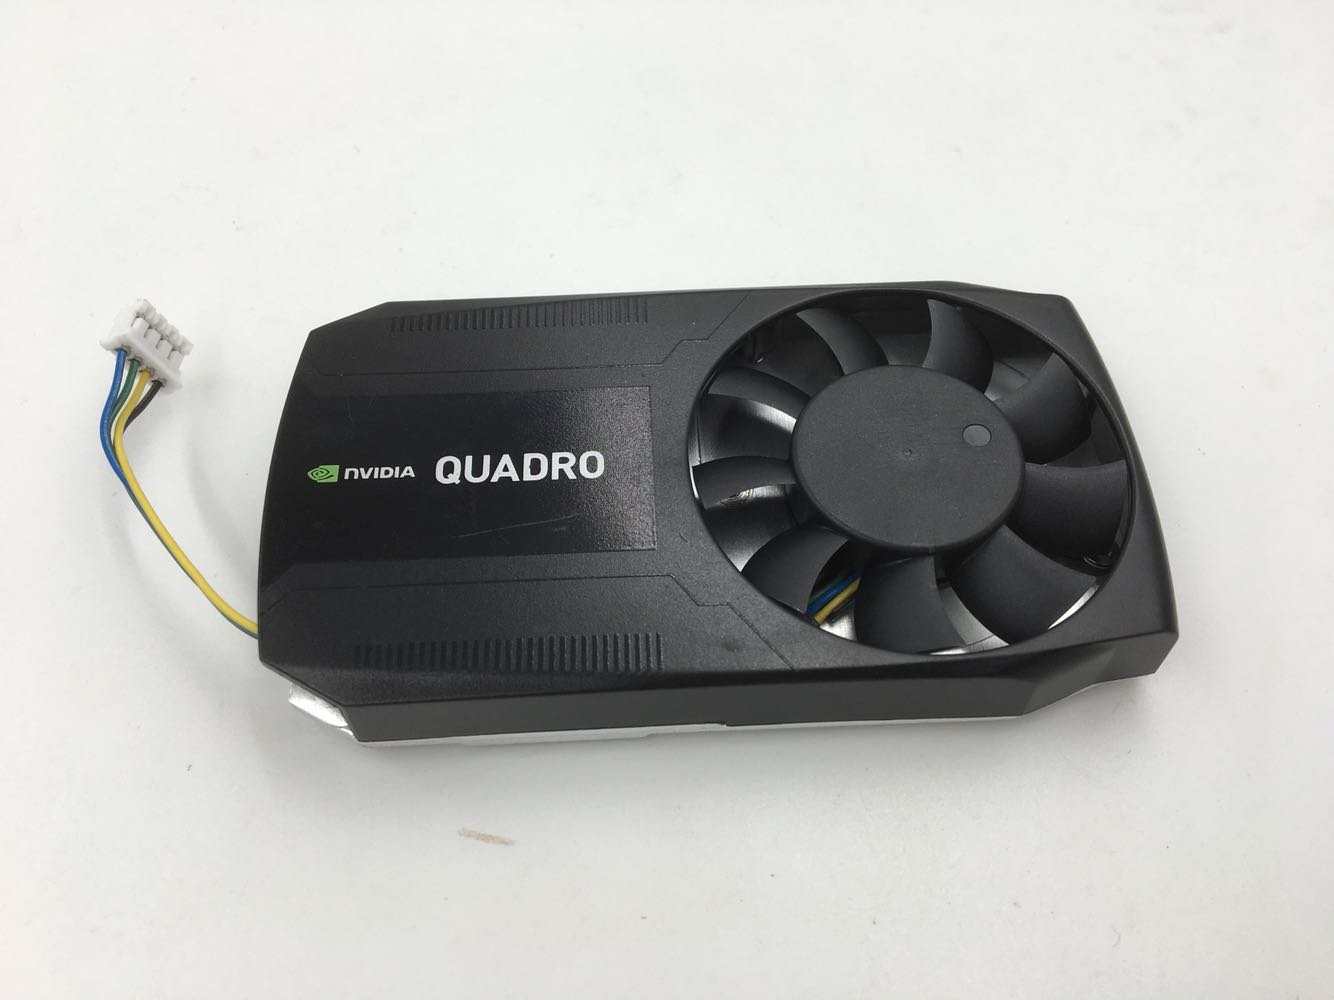 New NVIDIA QUADRO K620 VGA 4Pin 4Wire Dual Ball VGA Display Video Graphics Card Heatsink Cooling Fan